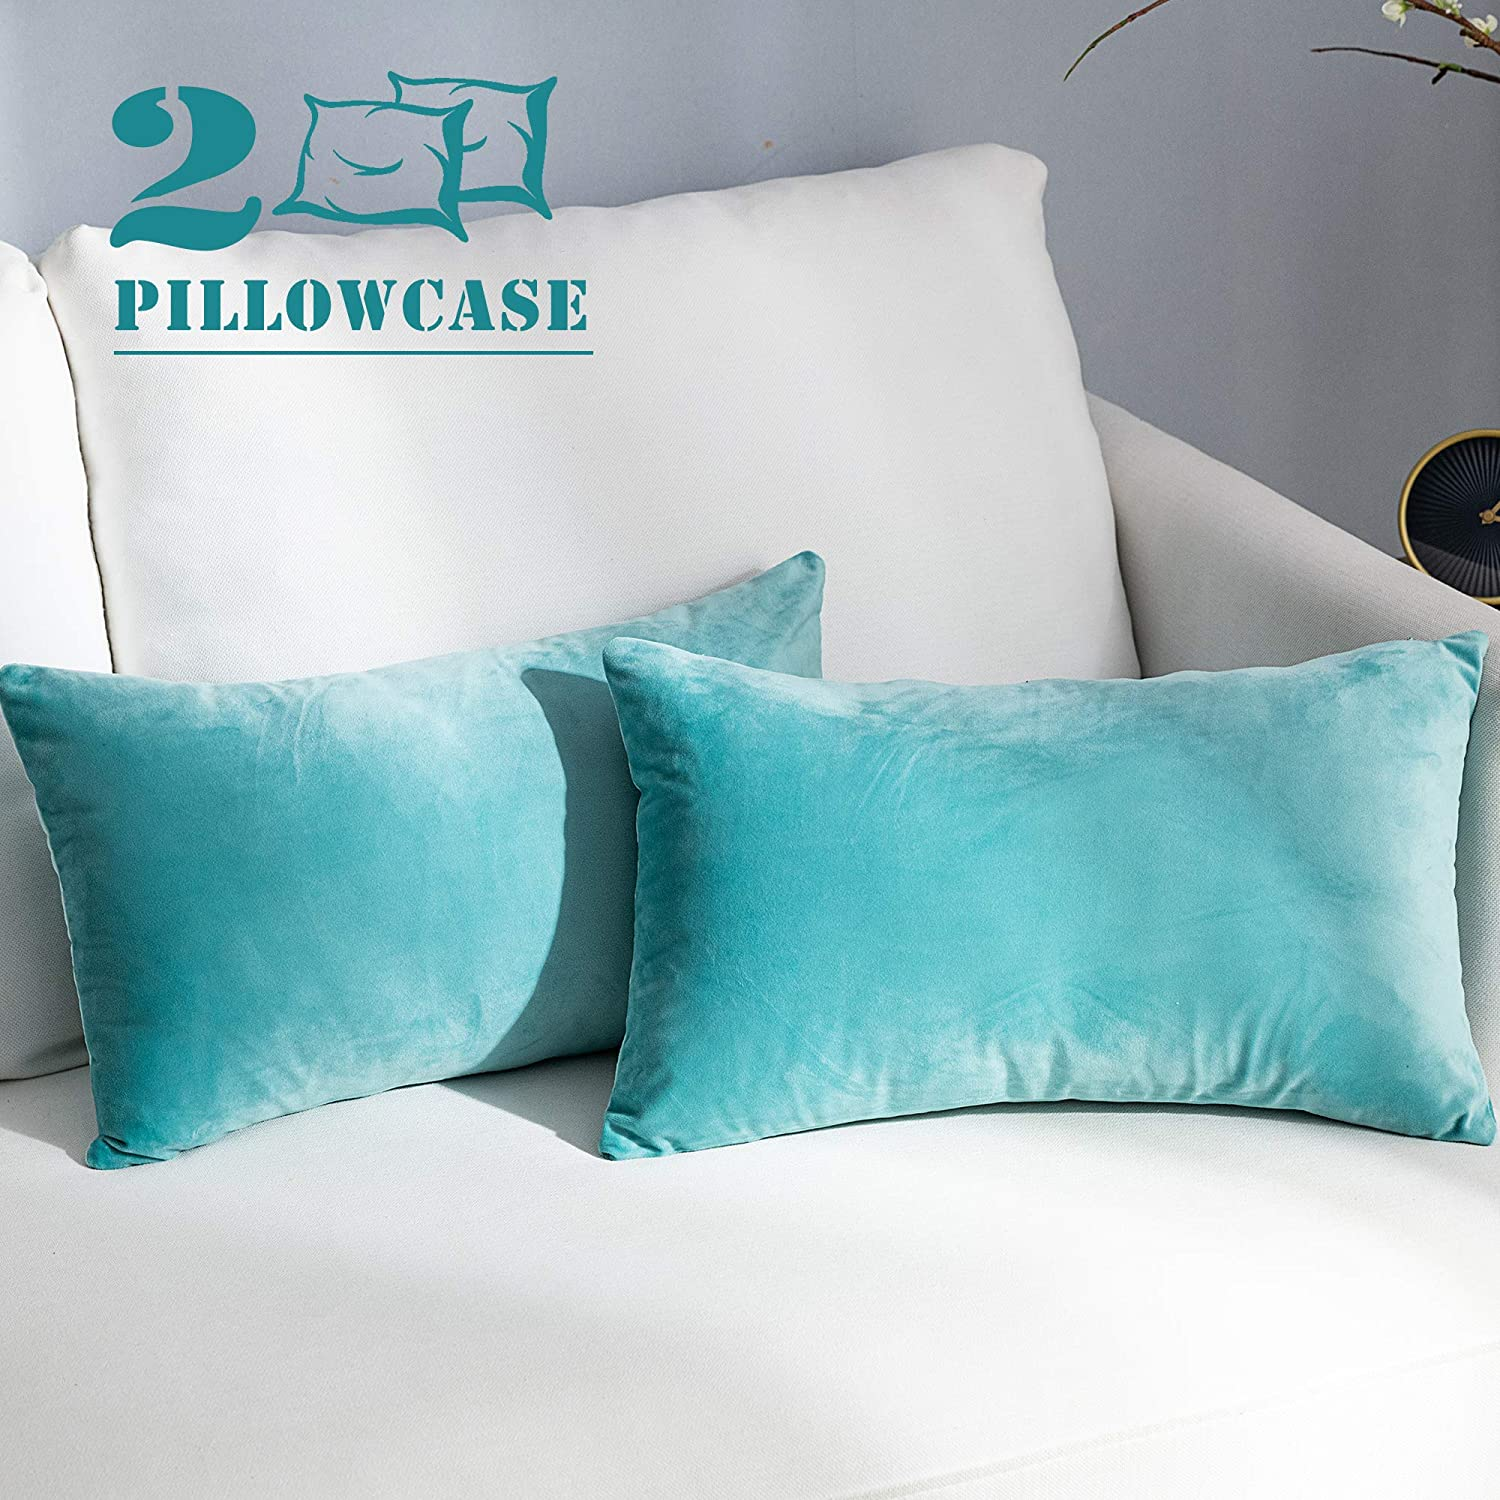 NANPIPER Set of 2 Velvet Soft Decorative Cushion Throw Pillow Covers 12x20 Inch/30x50 cm Cozy Solid Velvet Square Pillowcase Cushion Covers Cyan for Couch and Bed